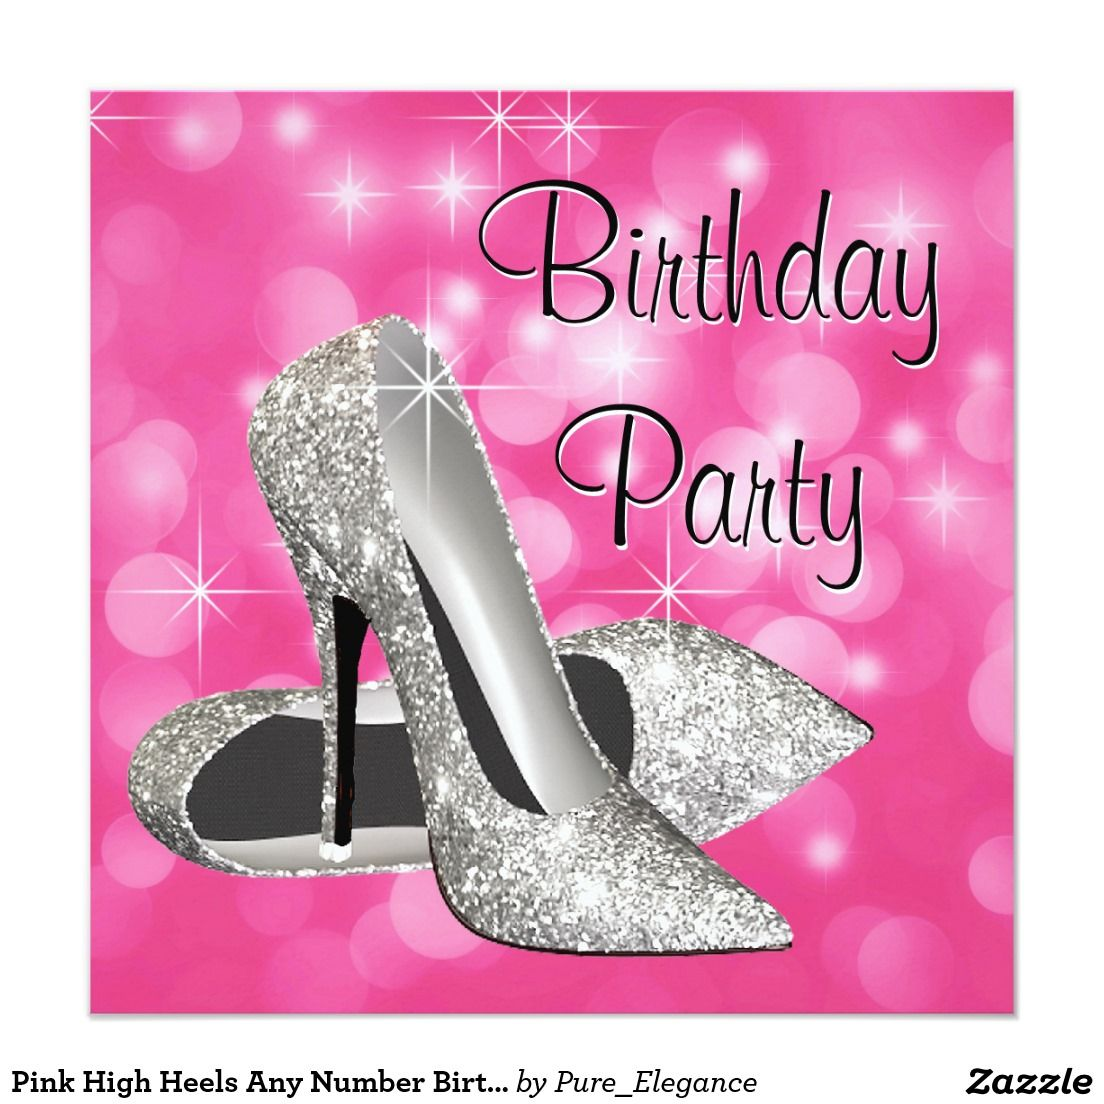 Pink High Heels Any Number Birthday Party 525x525 Square Paper